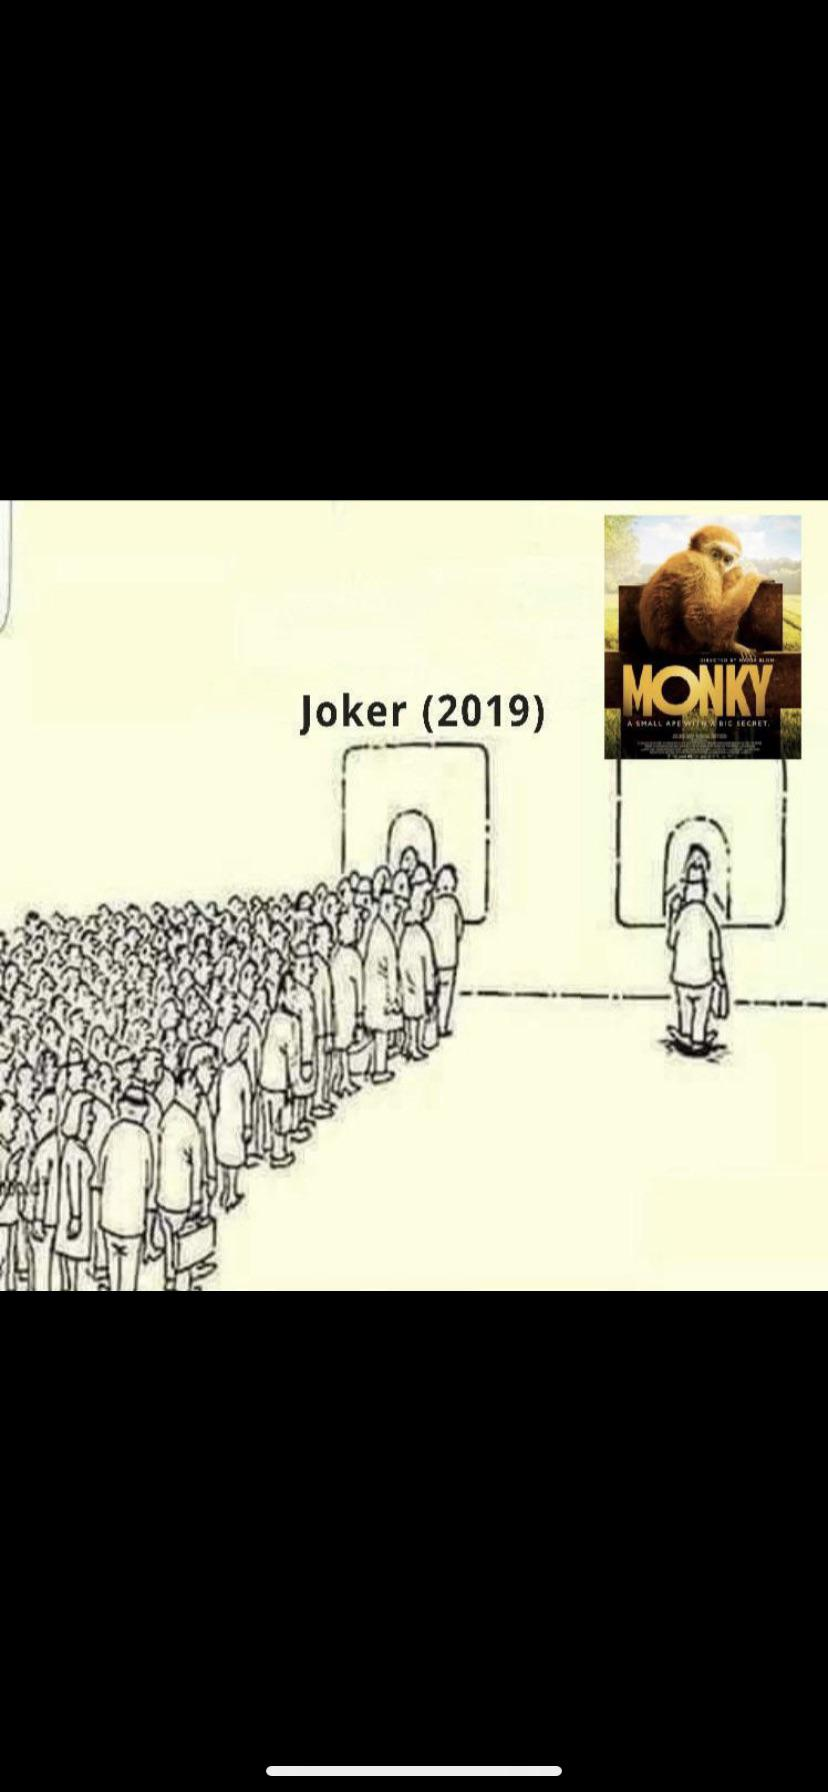 One ticket to monky please : ape